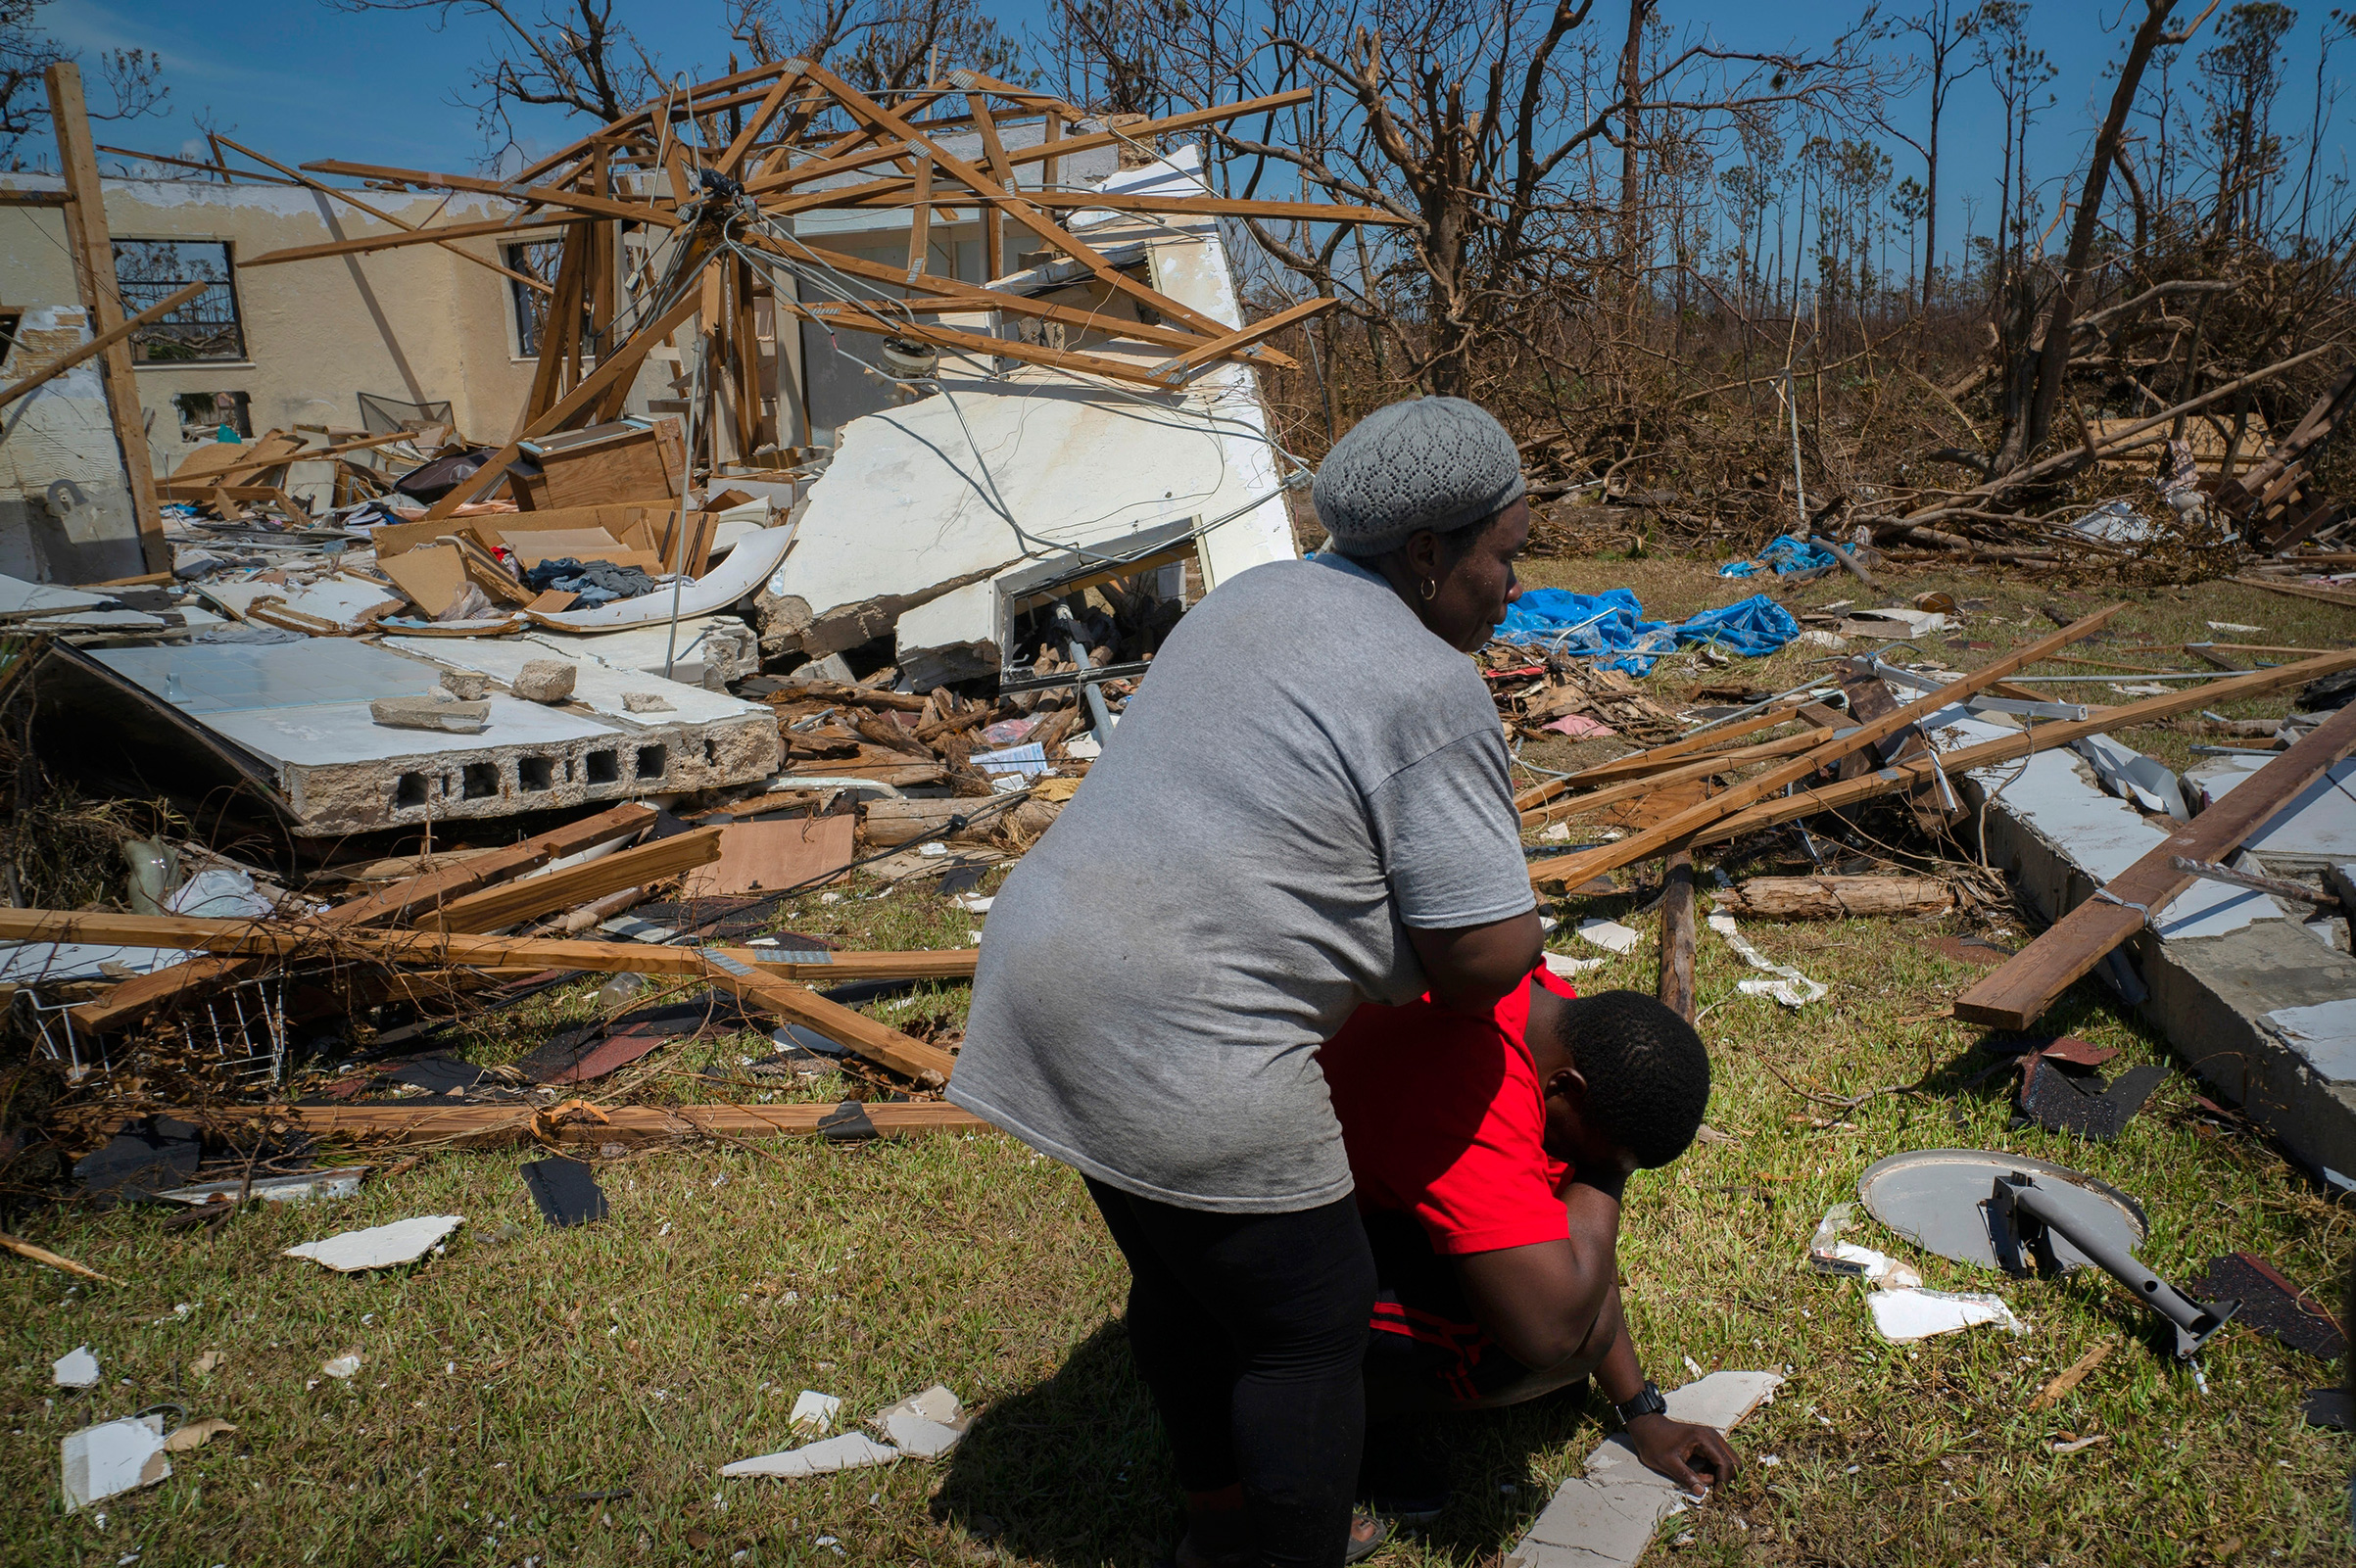 A woman comforts a man who cries after discovering his shattered house and not knowing anything about his eight missing relatives who lived there, High Rock, Grand Bahama, Bahamas, Thursday, Sept. 5, 2019.